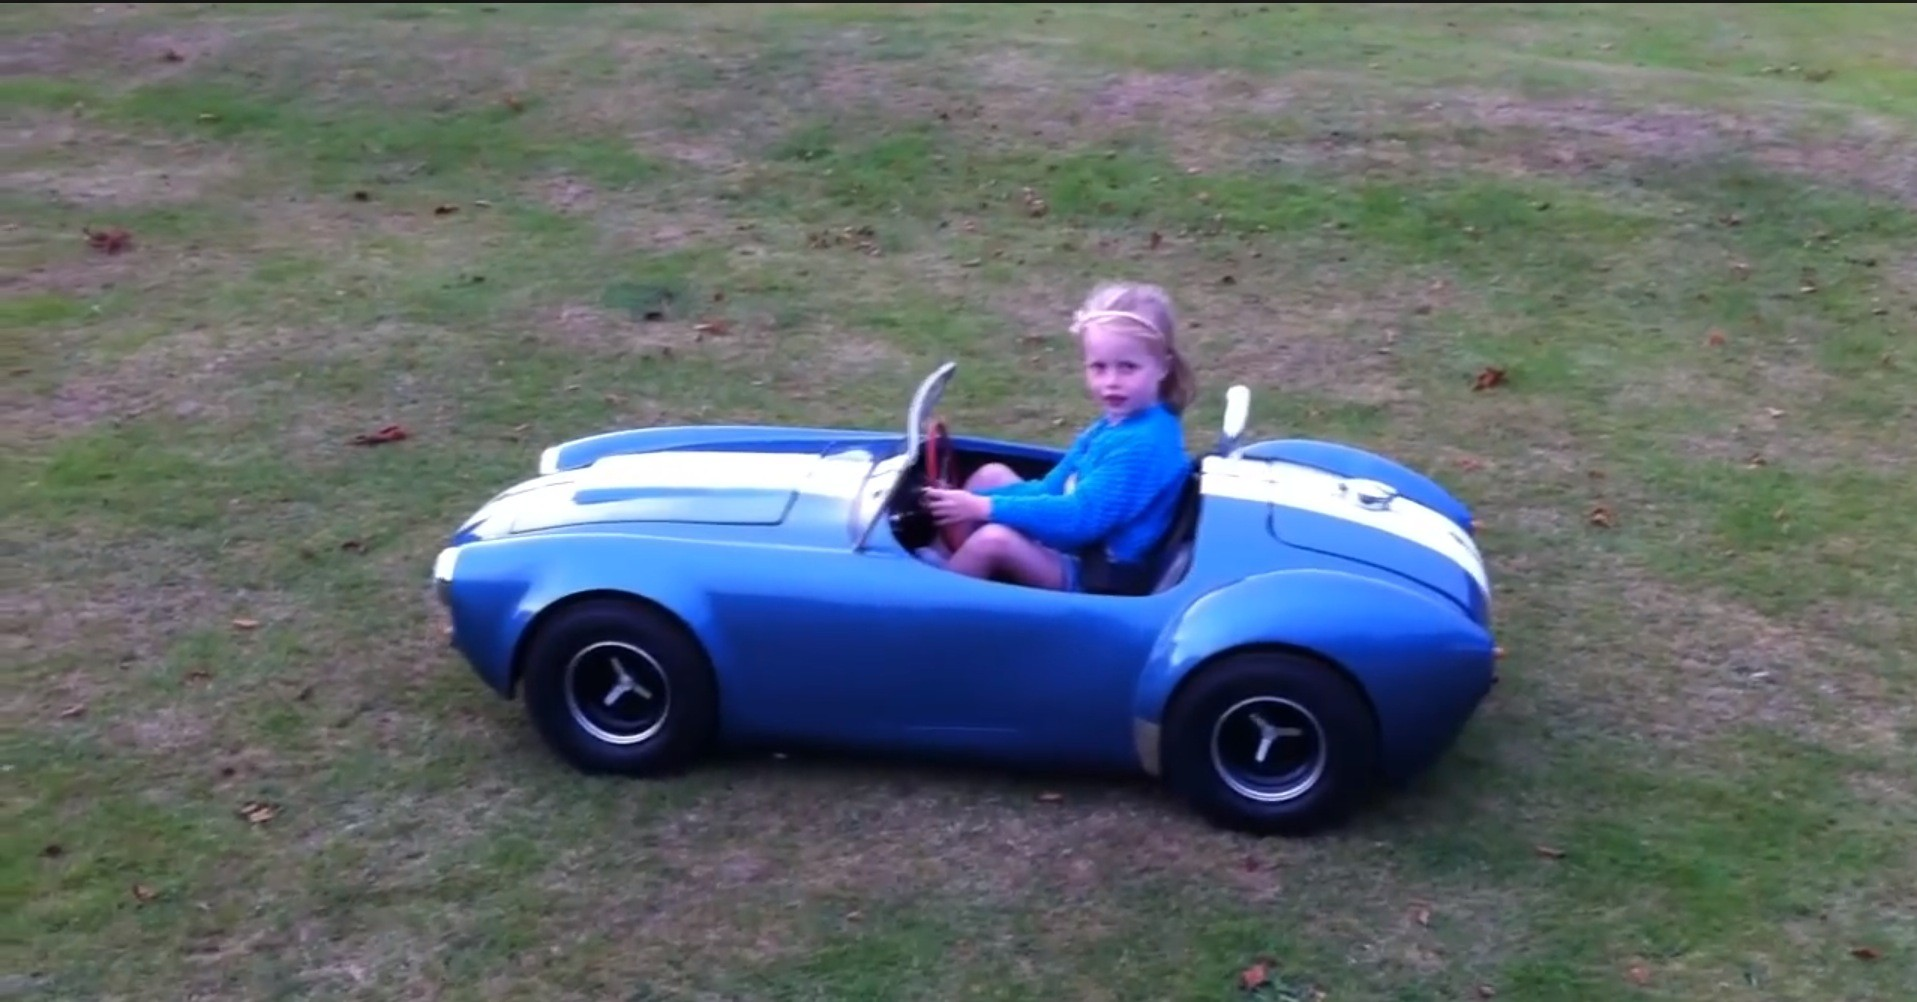 https://s1.cdn.autoevolution.com/images/news/gallery/man-build-scale-shelby-cobra-ferrari-250-gto-for-his-daughter-scarlett-video_2.jpg